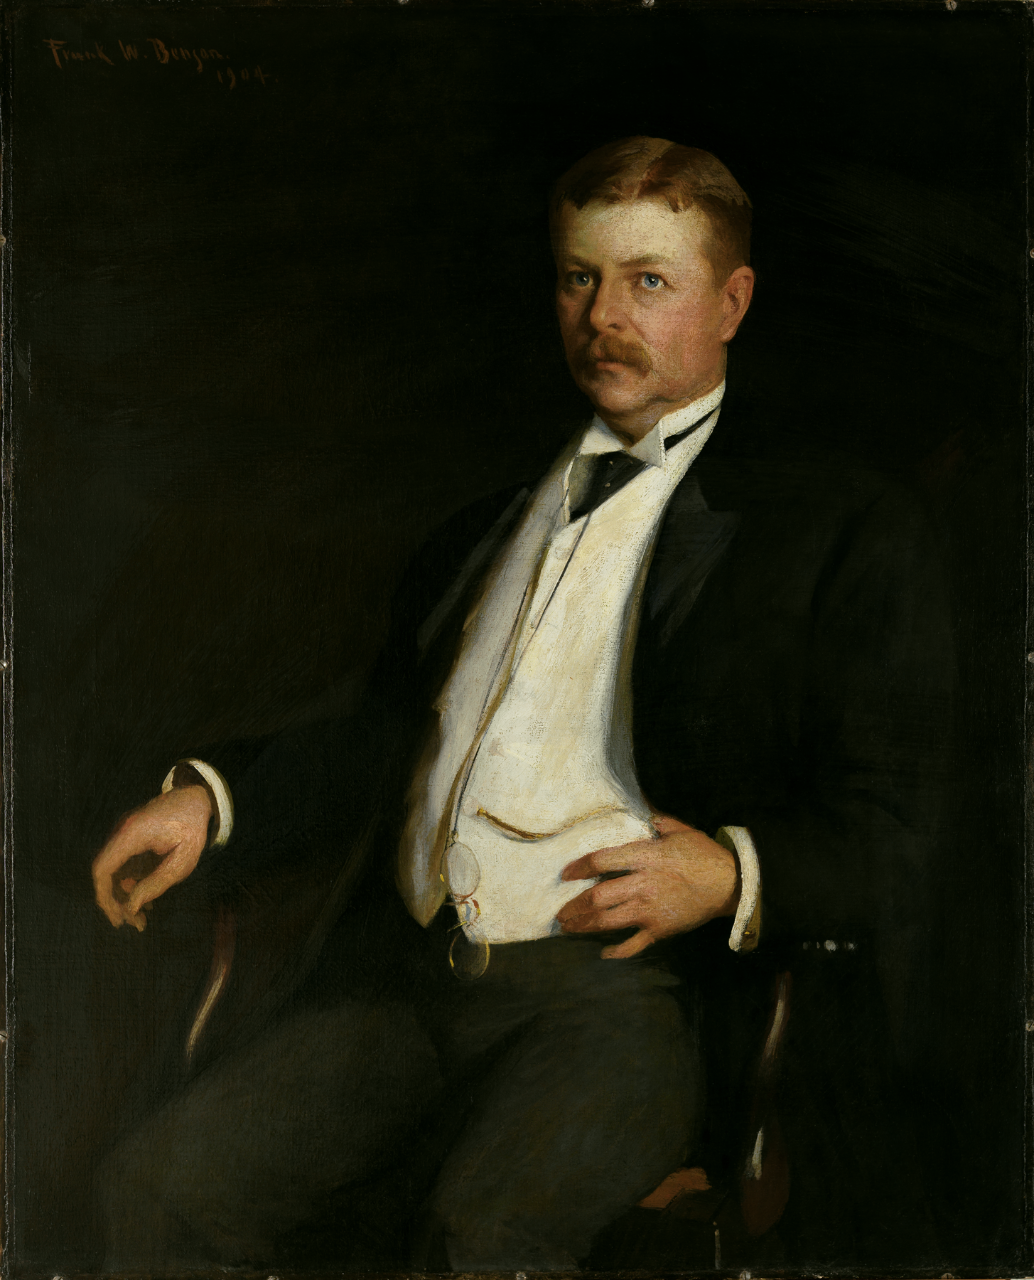 Portrait of Secretary of the Navy William Henry Moody